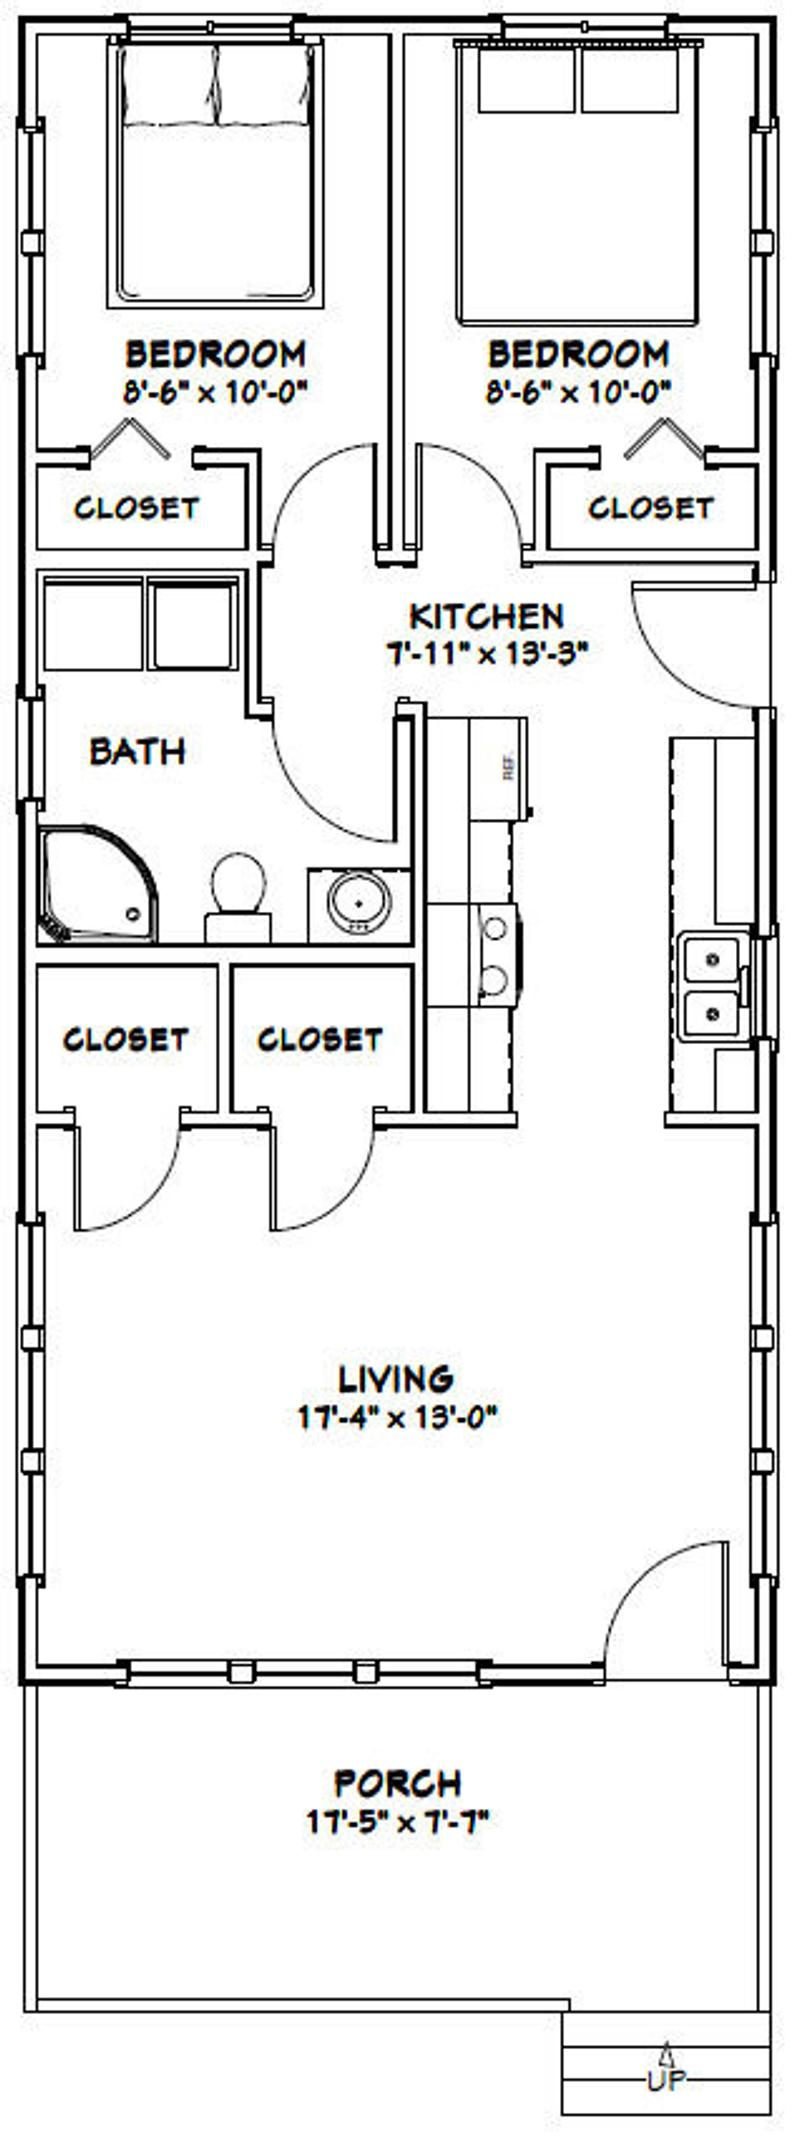 18x40 House 2 Bedroom 1 Bath 720 Sq Ft Pdf Floor Plan Instant Download Model 4g In 2021 Tiny House Floor Plans Shed Plans Wood Shed Plans